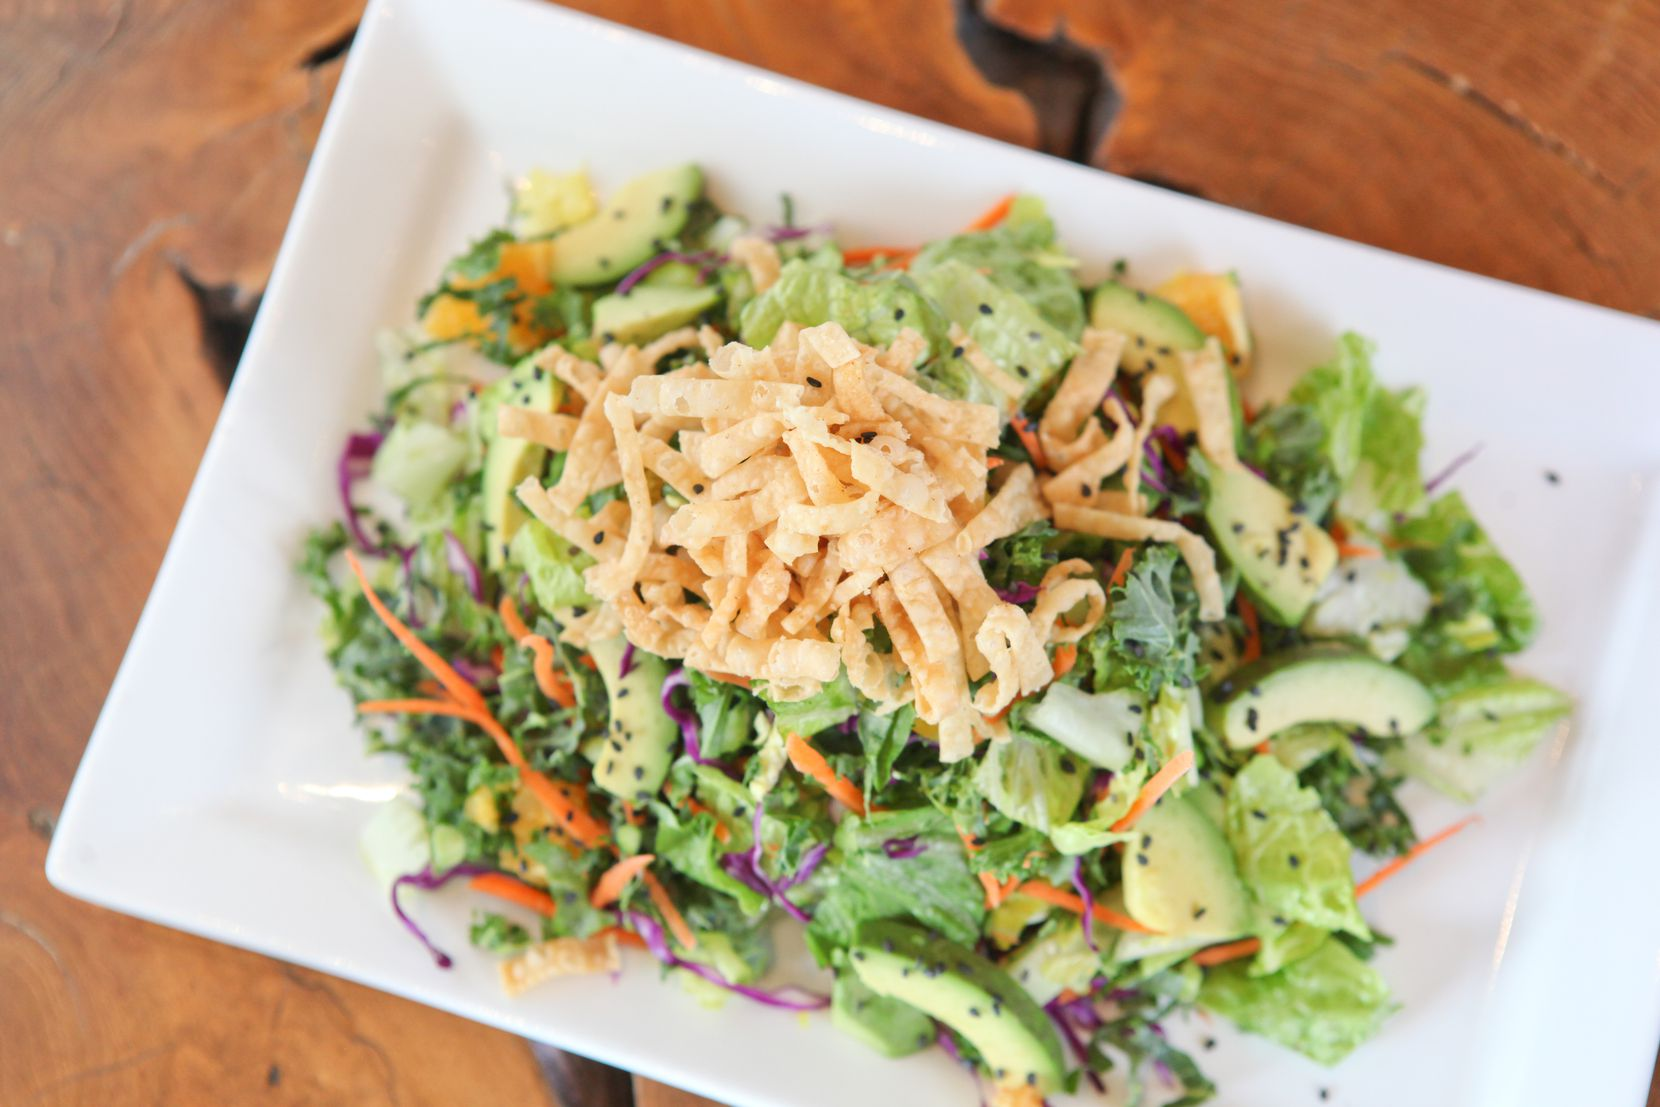 Dive Coastal Cuisine's crunchy Asian salad is available to order to-go this Mother's Day.